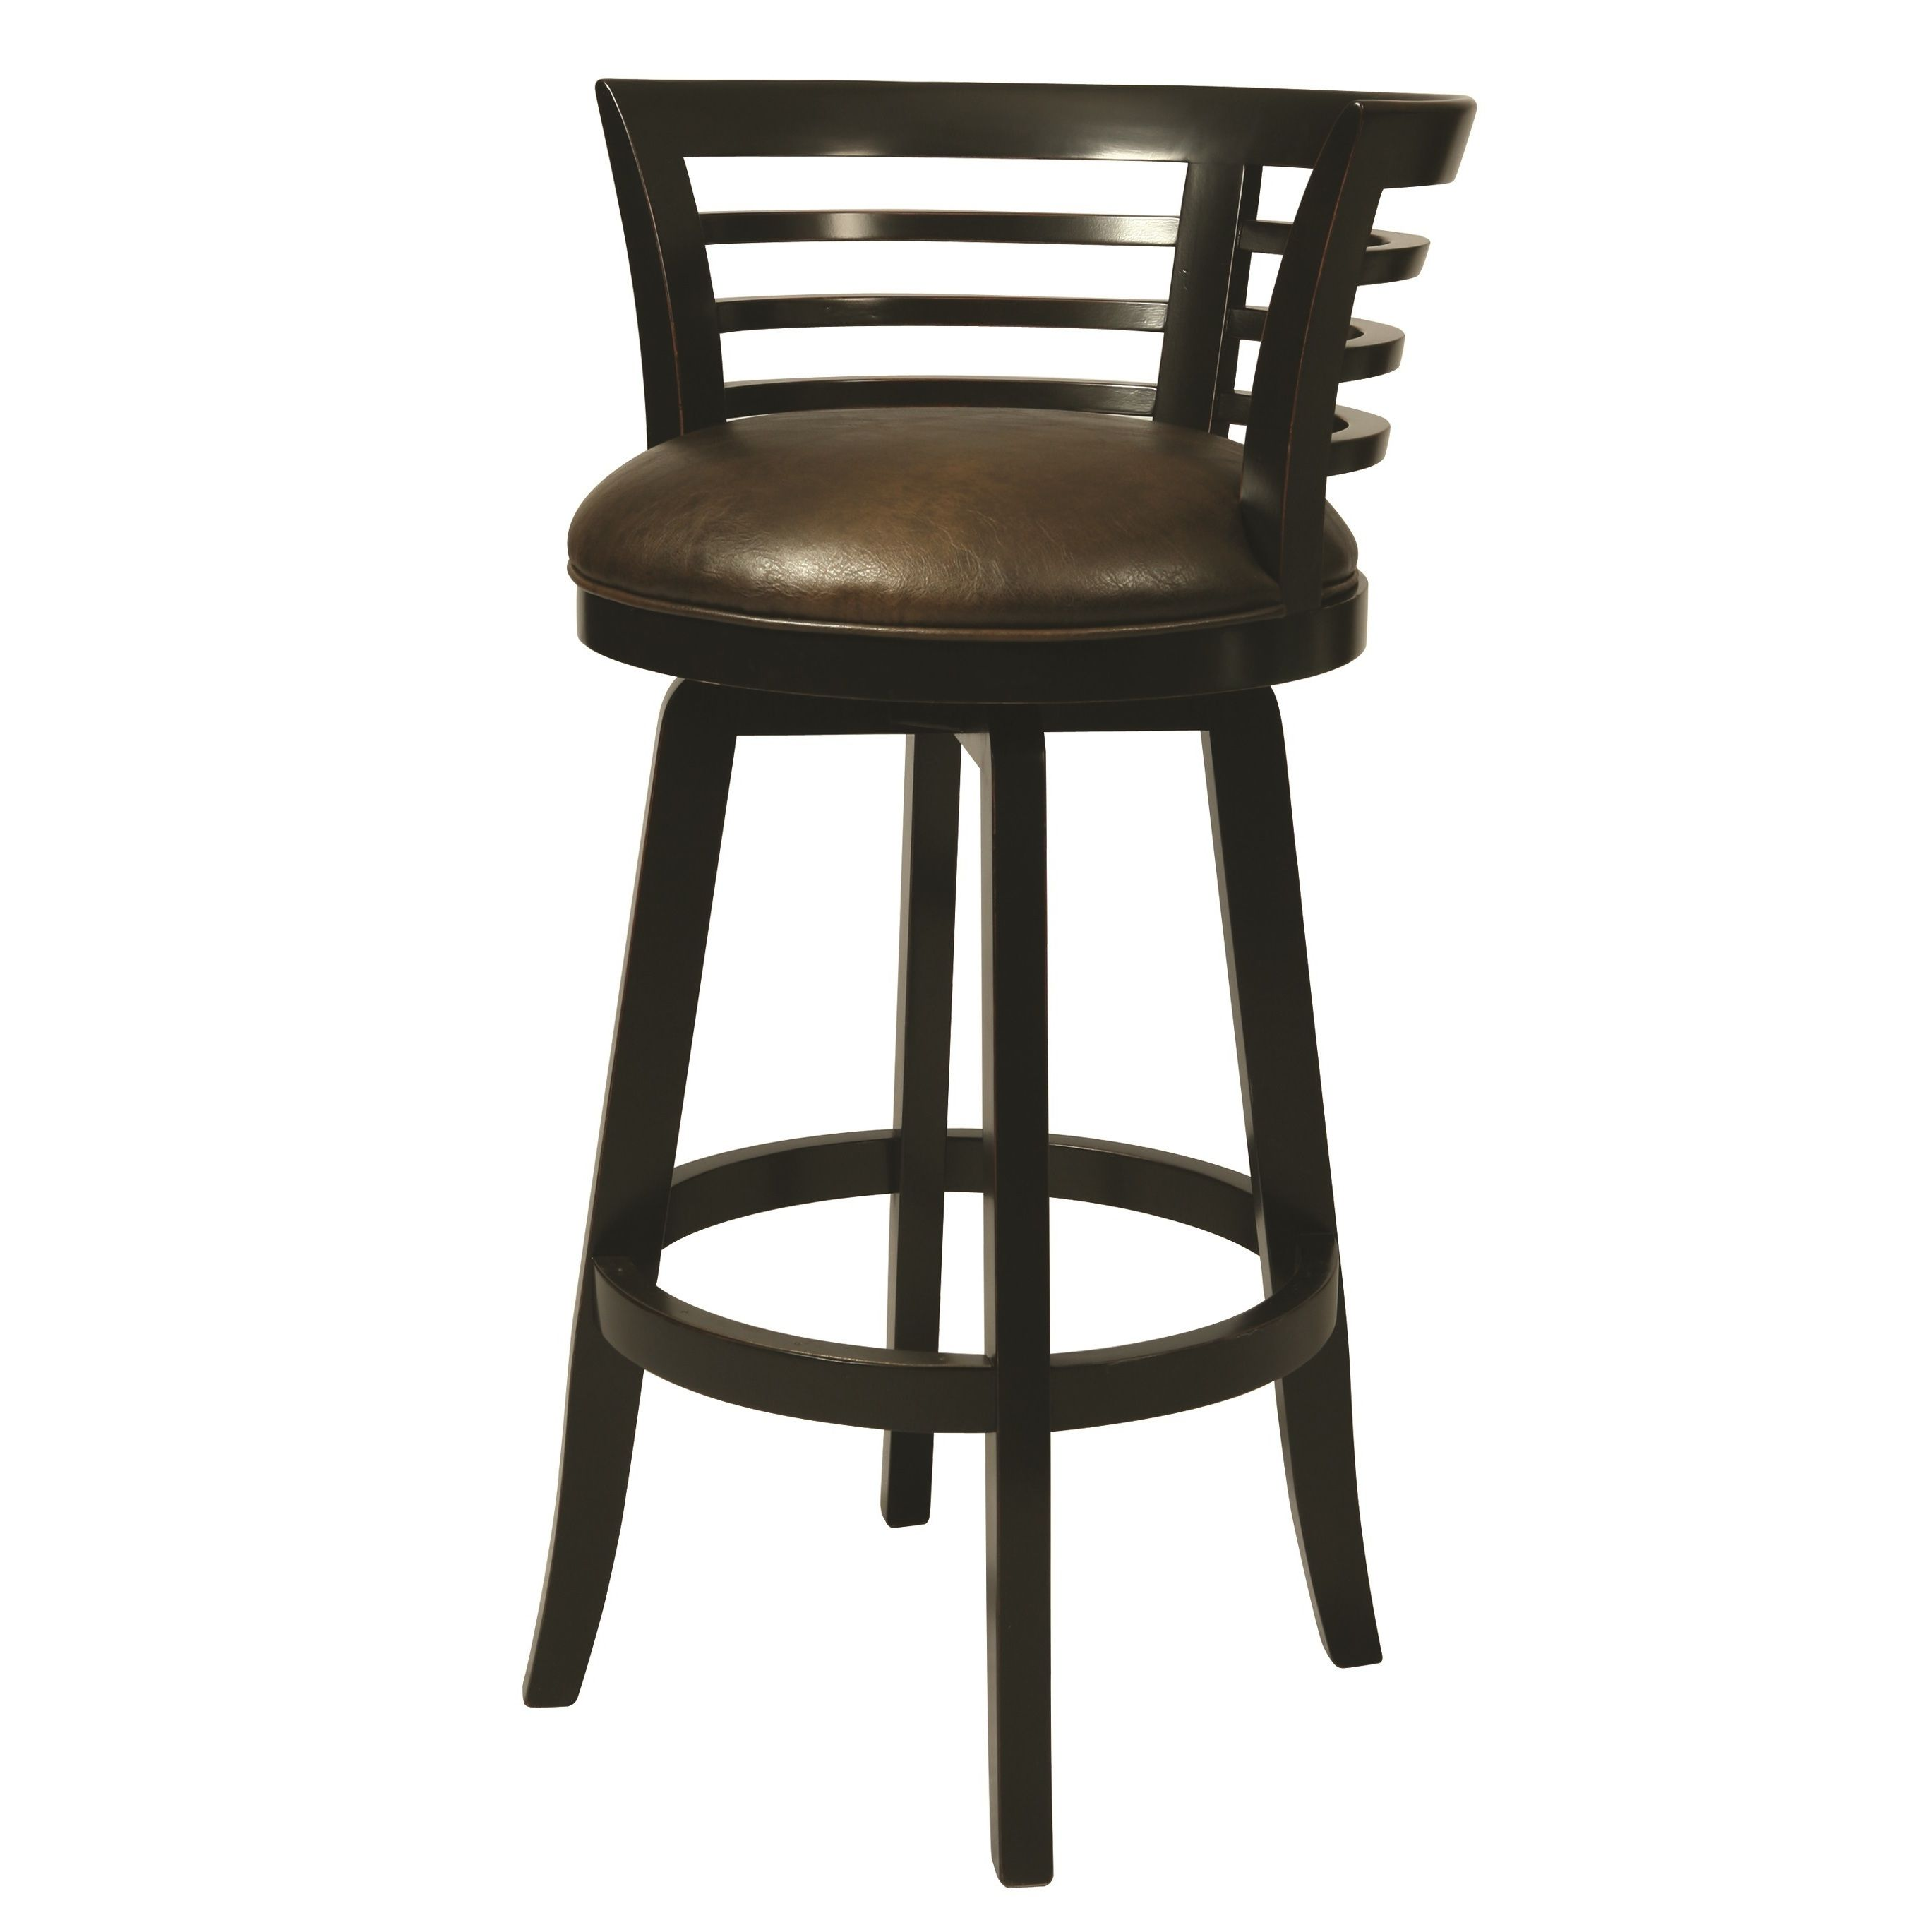 Peachy Ortona Black Finish Wood Faux Leather Swivel Stool 30 Uwap Interior Chair Design Uwaporg